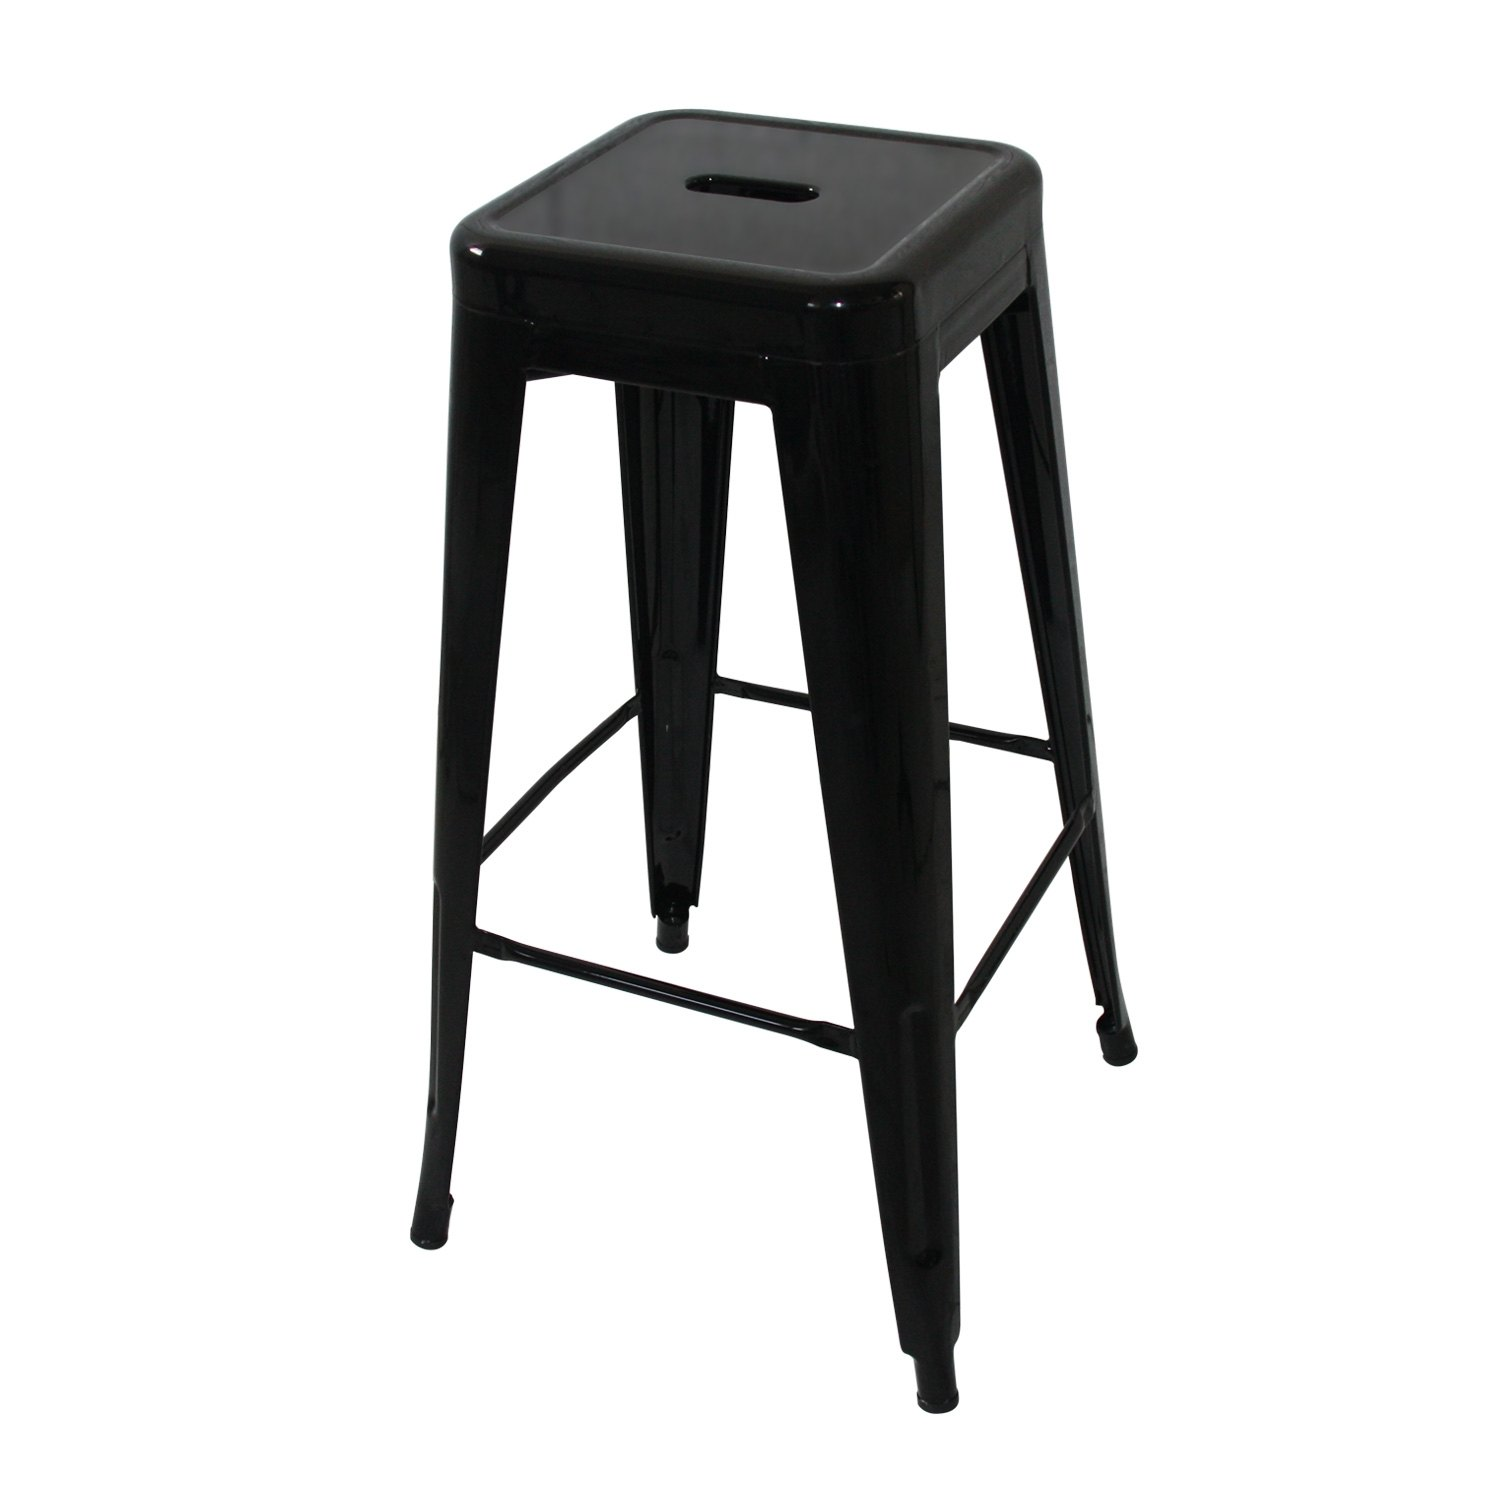 tabouret tolix pas cher tabouret de bar fixe design le. Black Bedroom Furniture Sets. Home Design Ideas